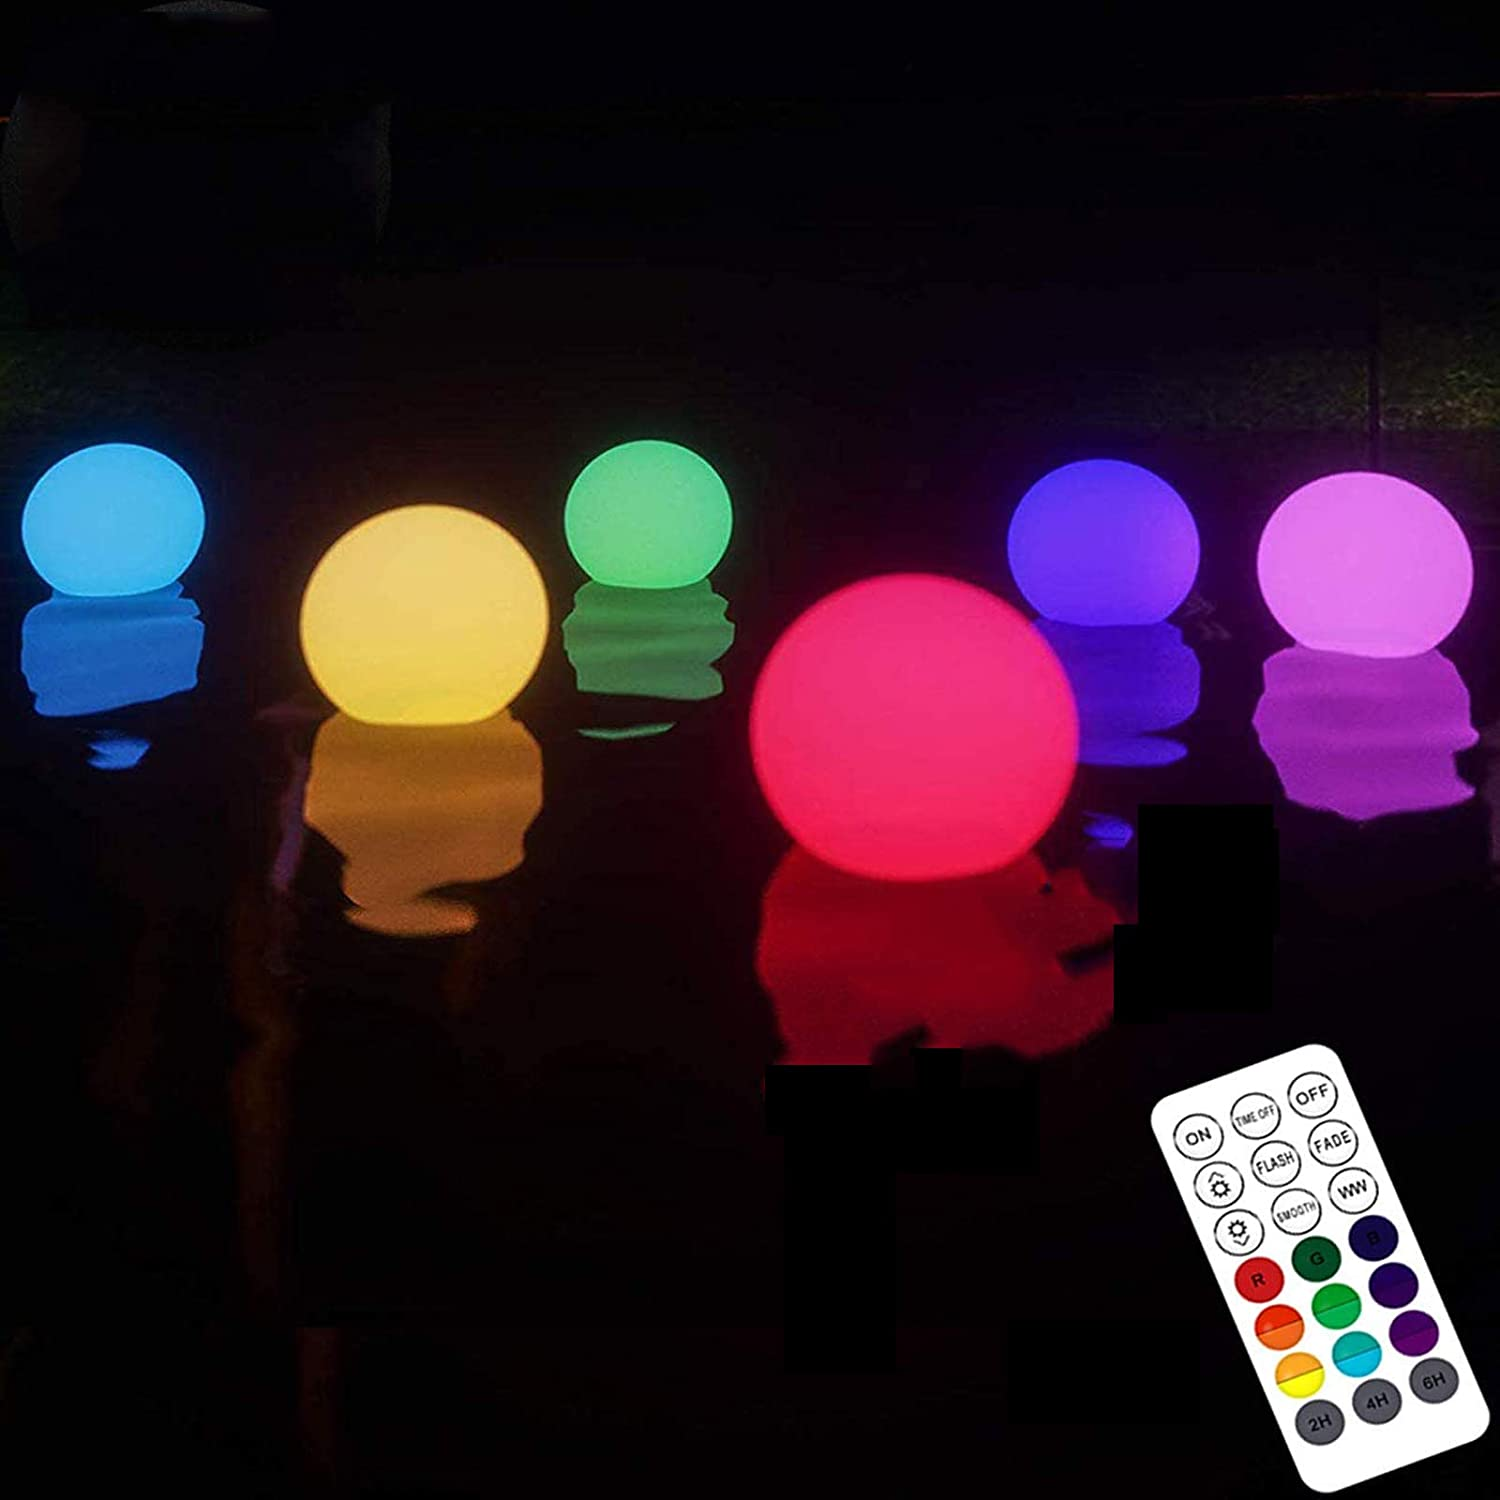 Upgrade Floating Pool Light with Remote (RF), Improved IP67 Full Waterproof, RGB Color Changing LED Pool Balls Battery Operated Light Up Bath Toys, Night Light, Yard Pond Pool Decor Lights (6 Packs)